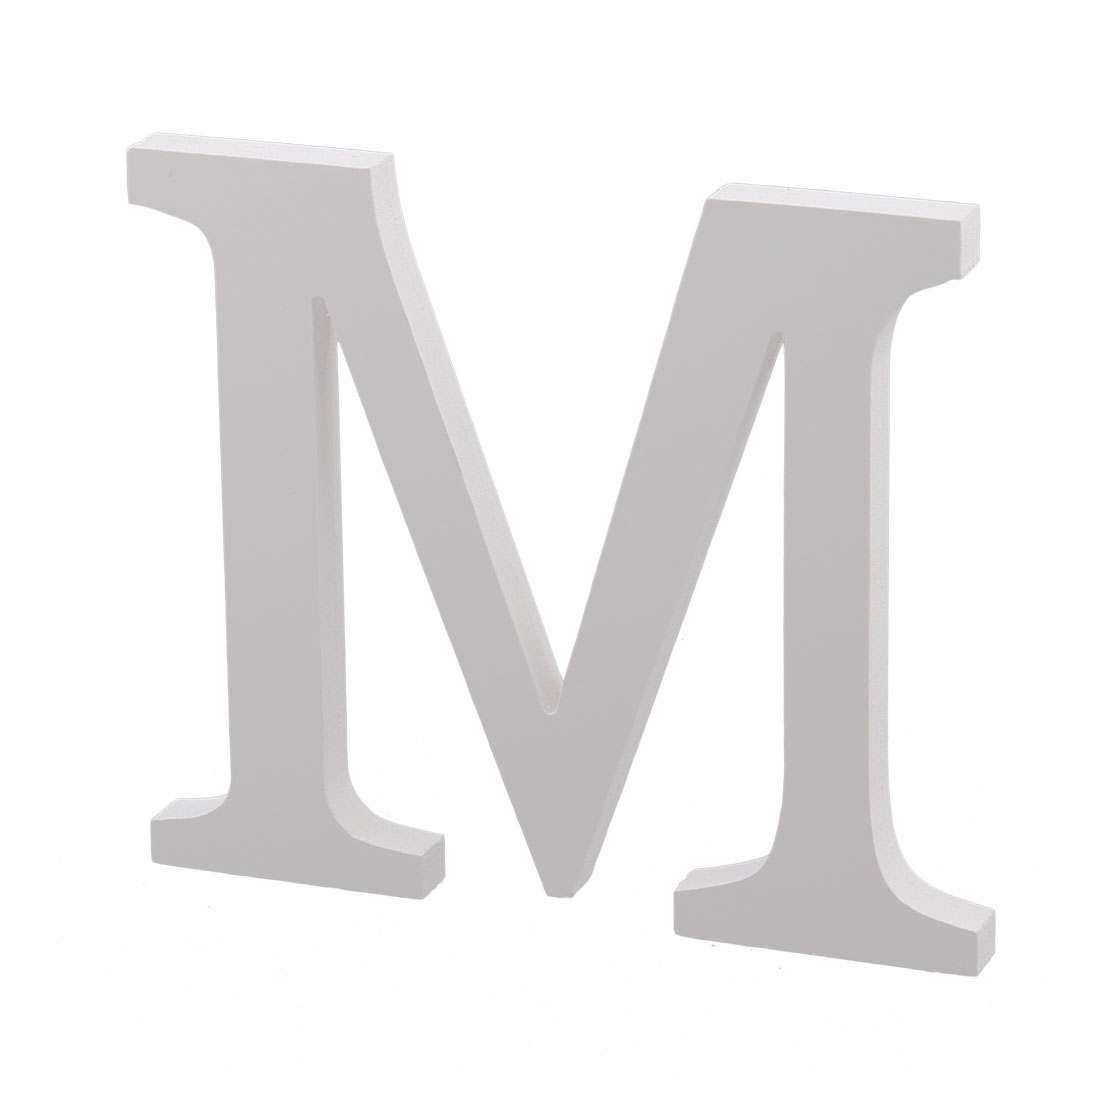 Wedding party plywood decoration english m letter alphabet for Decoration 9 letters